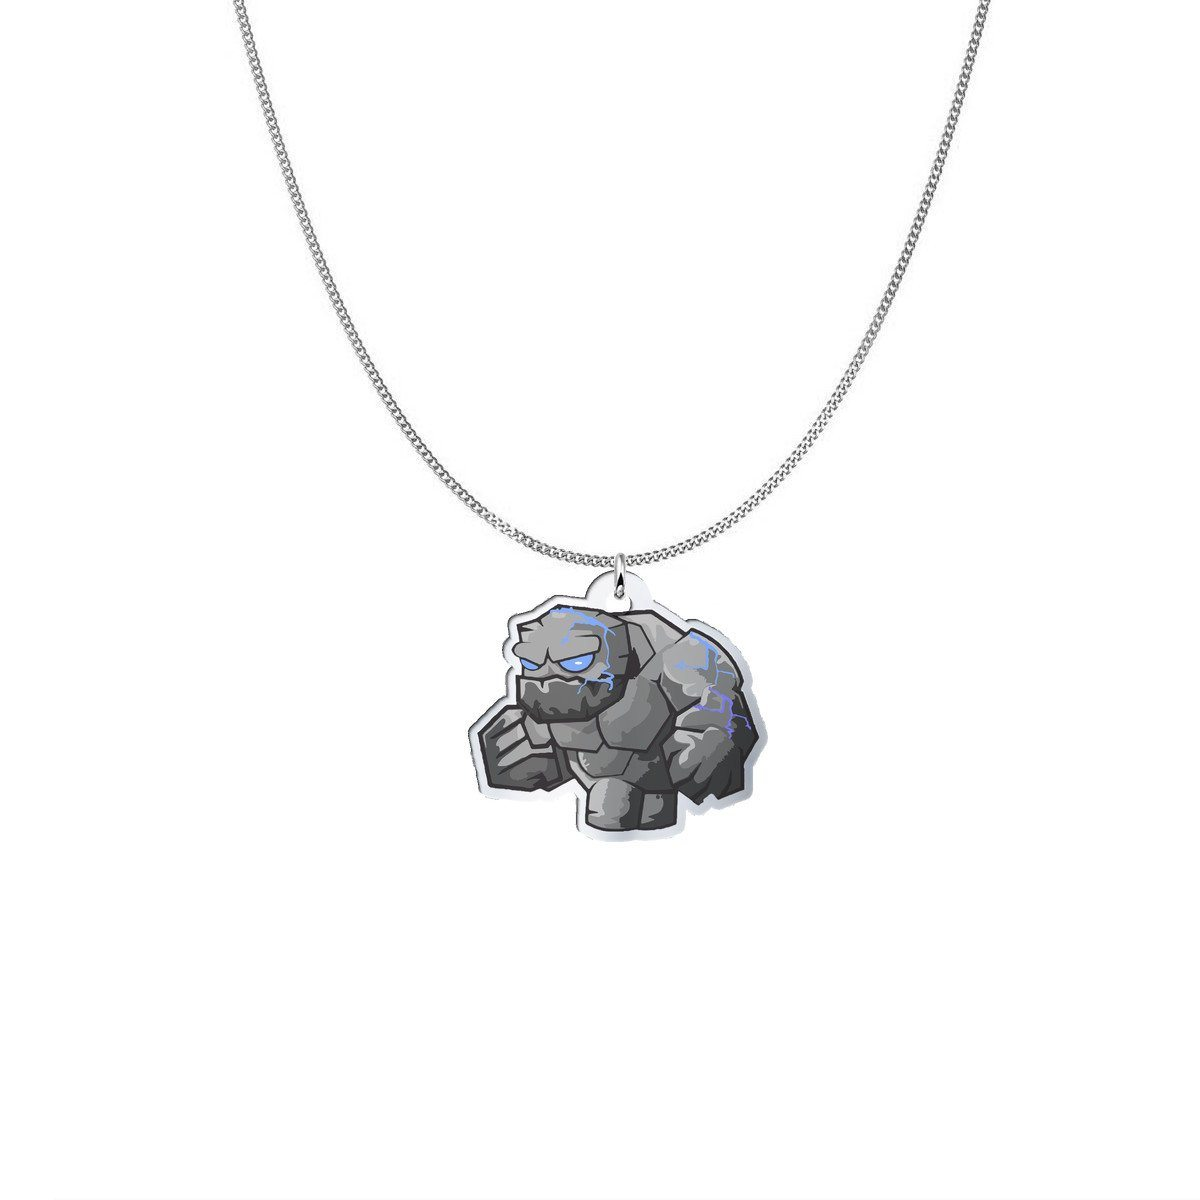 Pendant - Roddy The Scleroderma Monster Silver Necklace